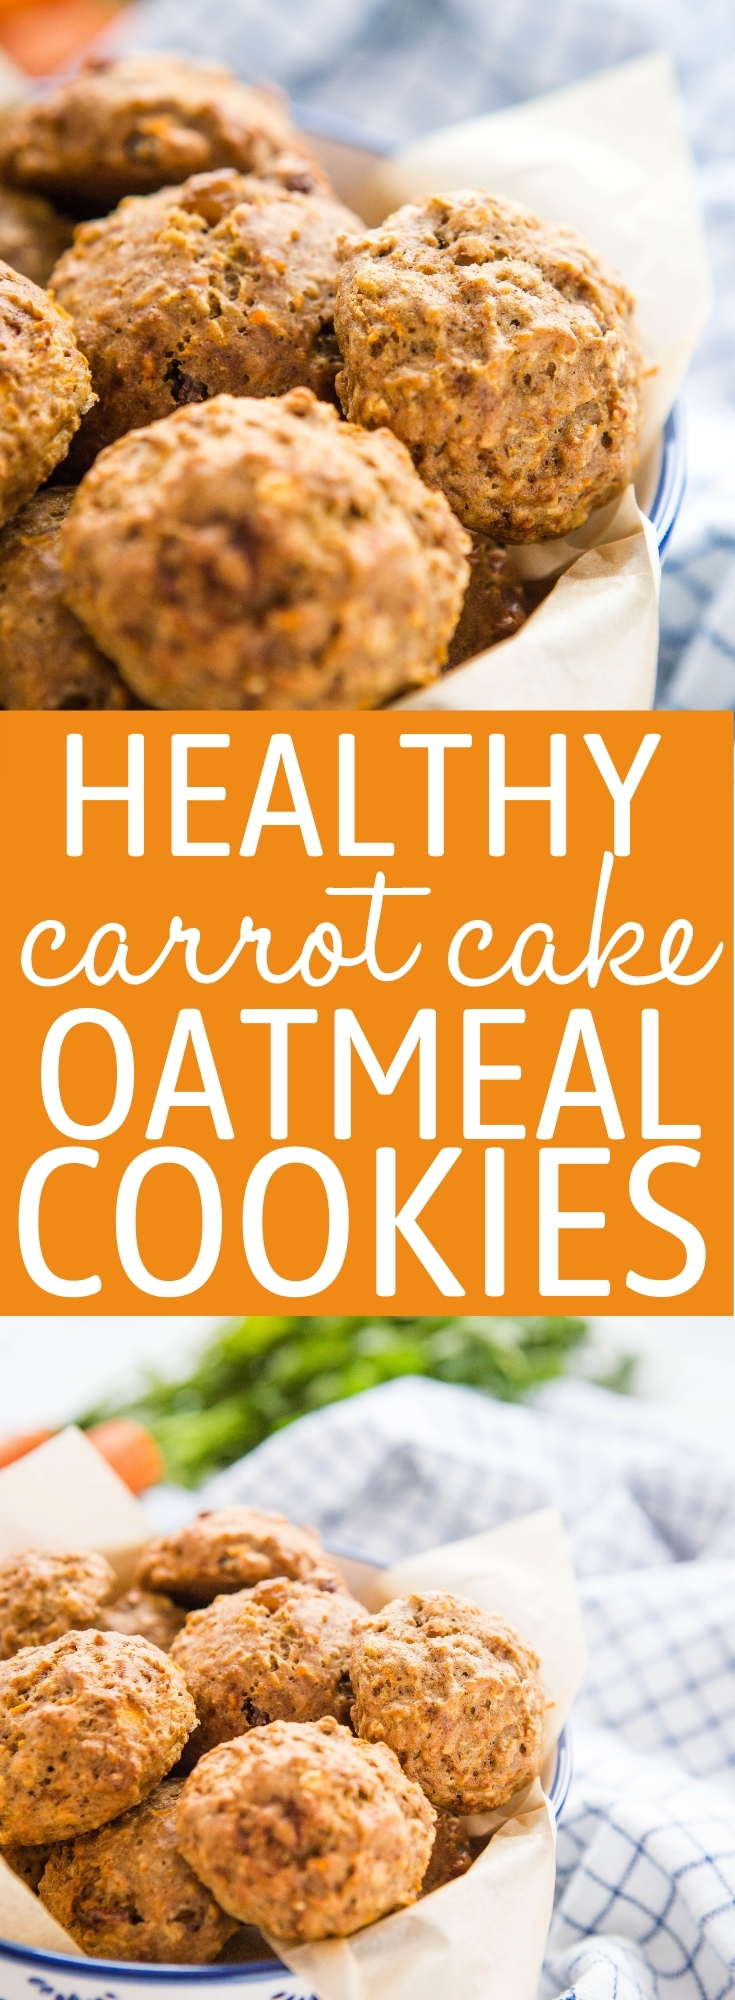 These Healthy Carrot Cake Oatmeal Cookies are the perfect healthy treat or snack that's packed with fruit and veggies, and made with whole grains and no refined sugar! Recipe from thebusybaker.ca! #cookies #healthy #carrotcake #oatmeal #wholegrains #kids #recipe #fibre #carrots #healthybaking via @busybakerblog